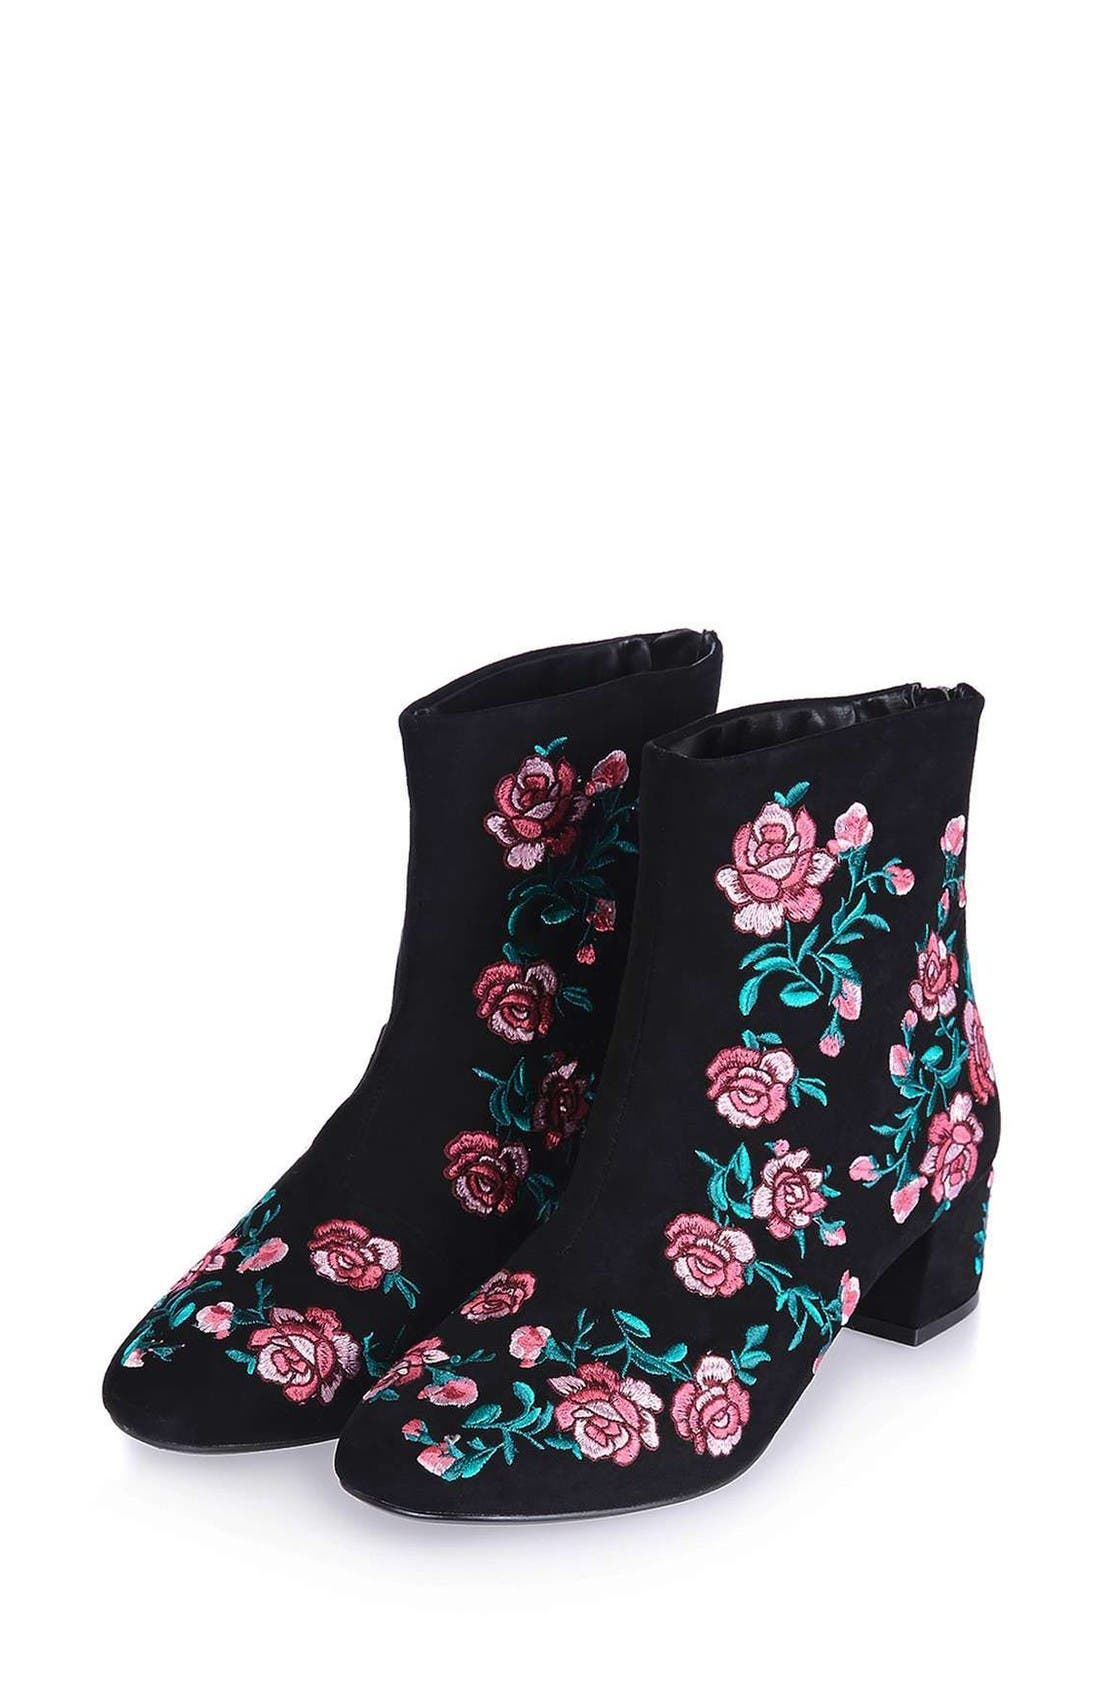 Alternate Image 1 Selected - Topshop Blossom Embroidered Bootie (Women)